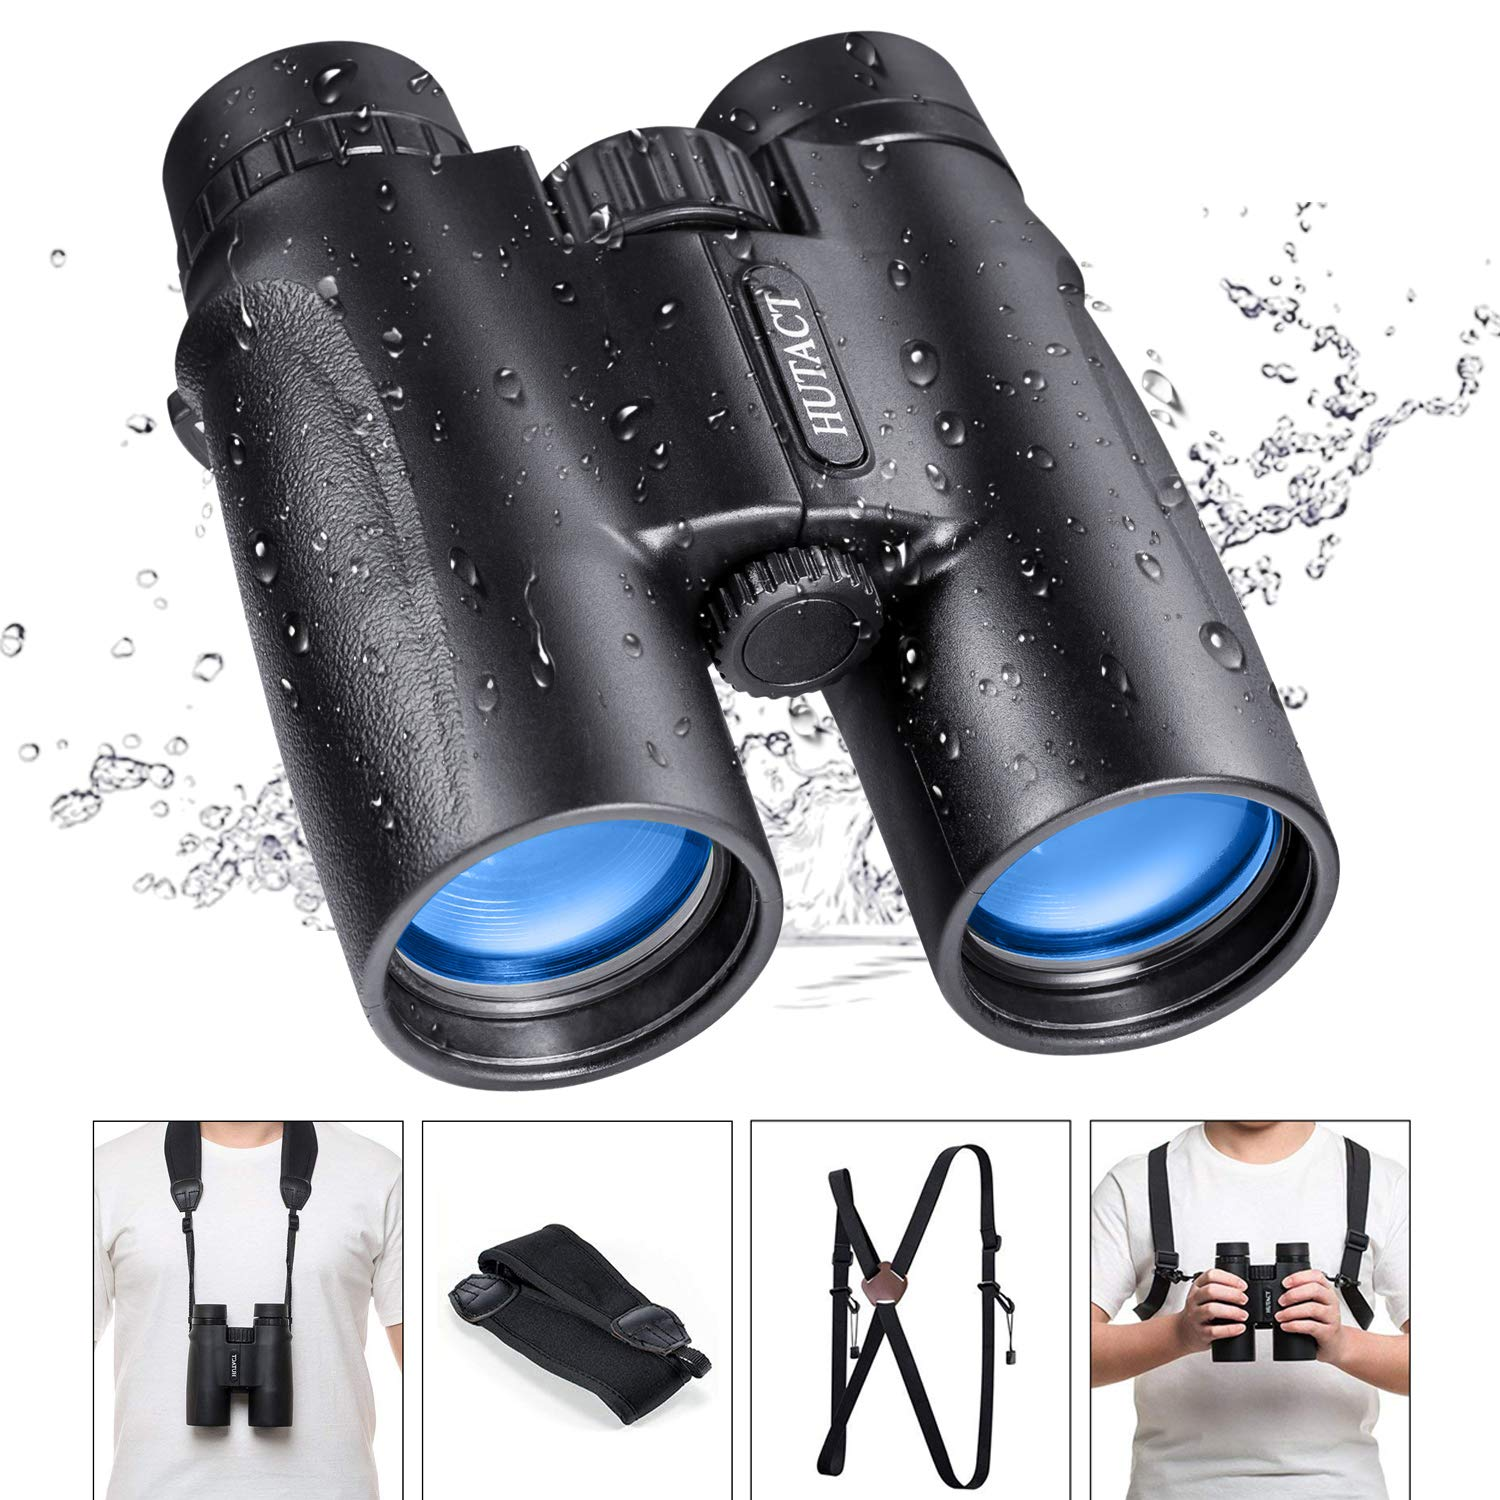 HUTACT Binoculars for Bird Watching, with Harness Strap and Carrying Bag, 10x42 High-Definition Optical Lenses, BAK4 Roof Prism, Binoculars Adults Compact for Hunting, Concerts and Outdoor Tourism by HUTACT